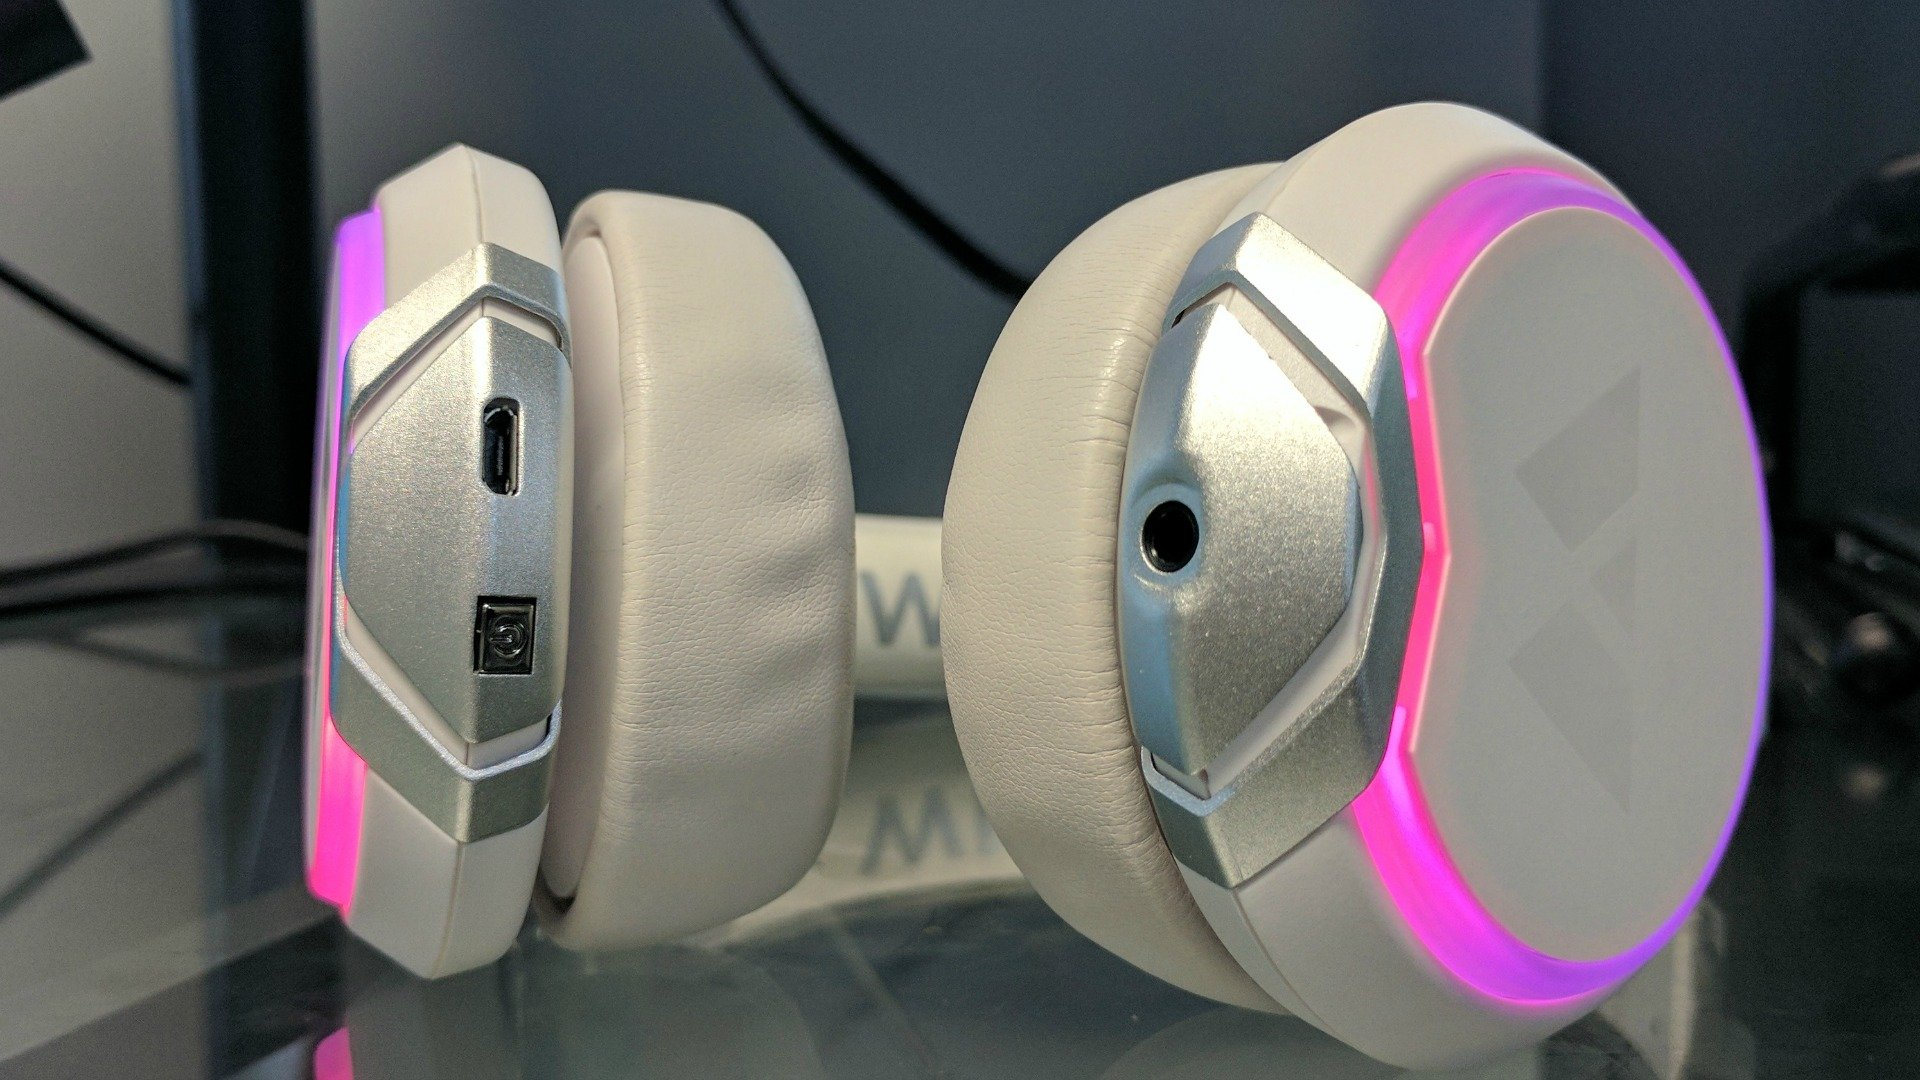 6bb8752dc87 Wearhaus Arc review: The world's first 'social headphones'